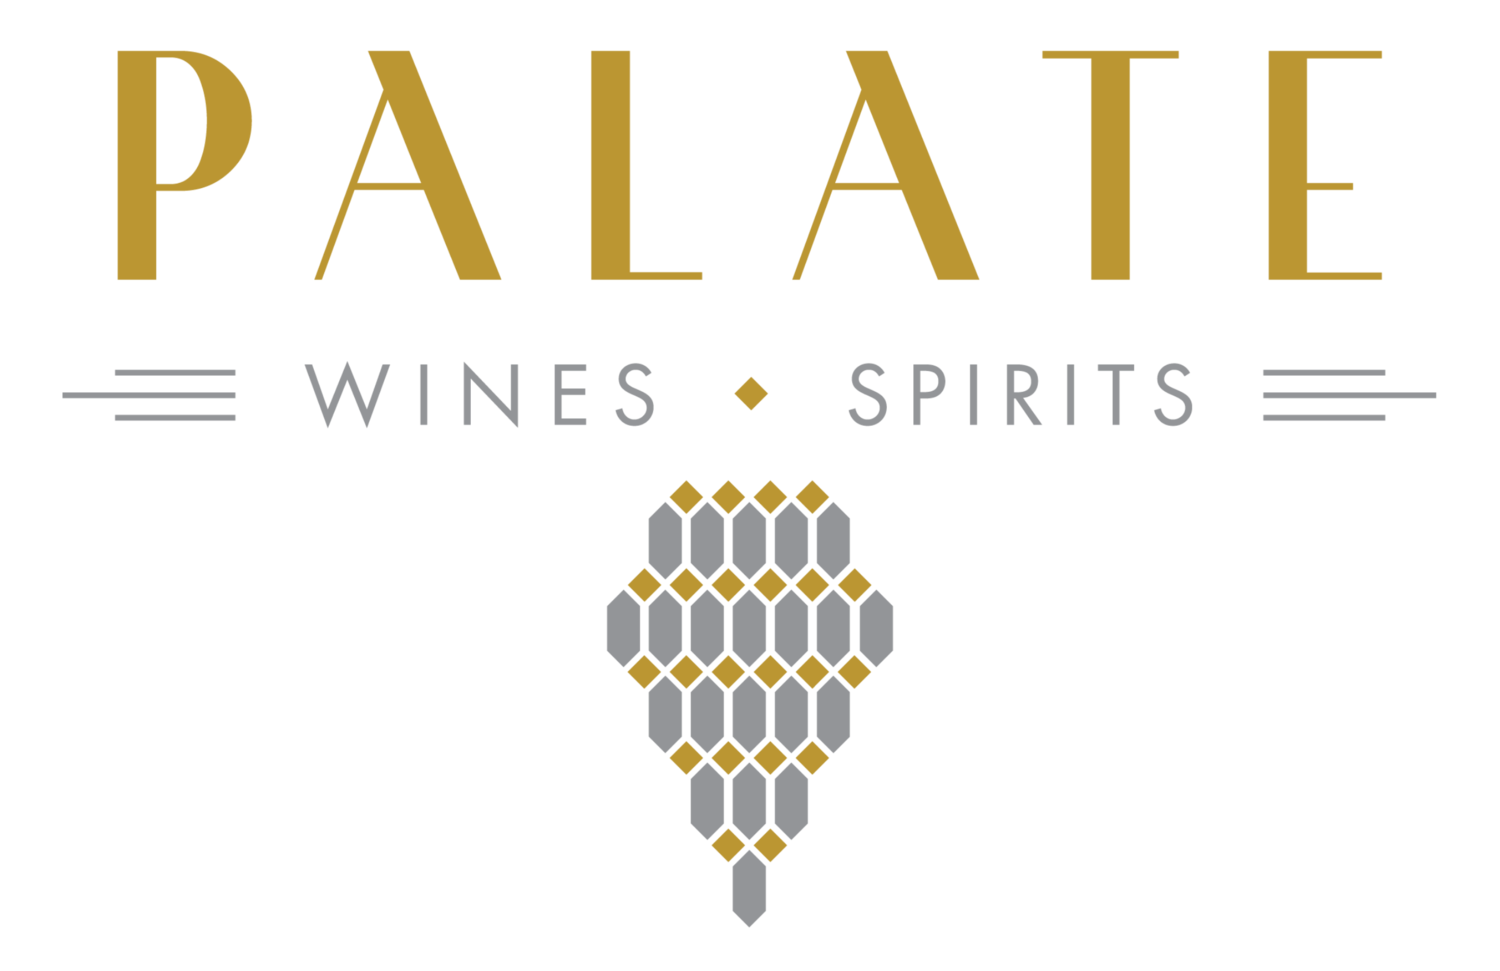 Palate Wines and Spirits